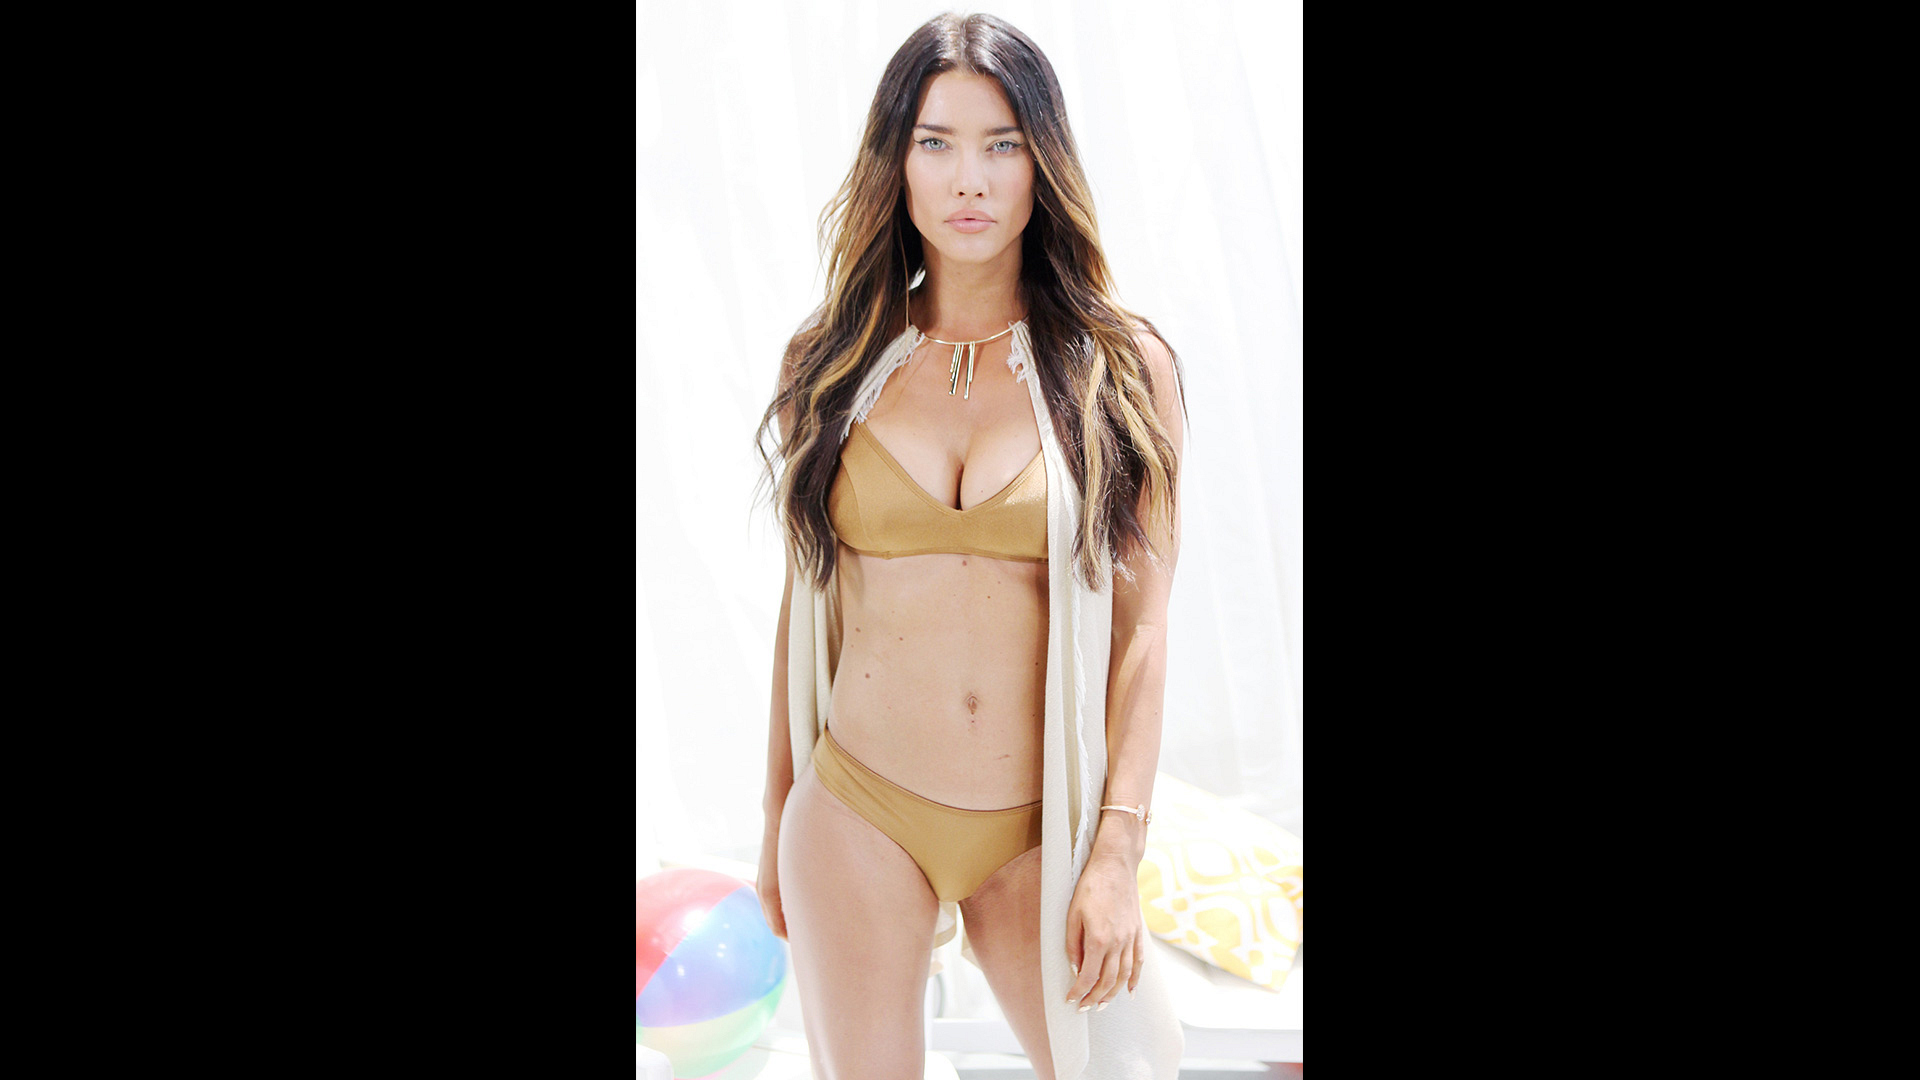 Jacqueline MacInnes Wood dons a neutral-colored two piece.